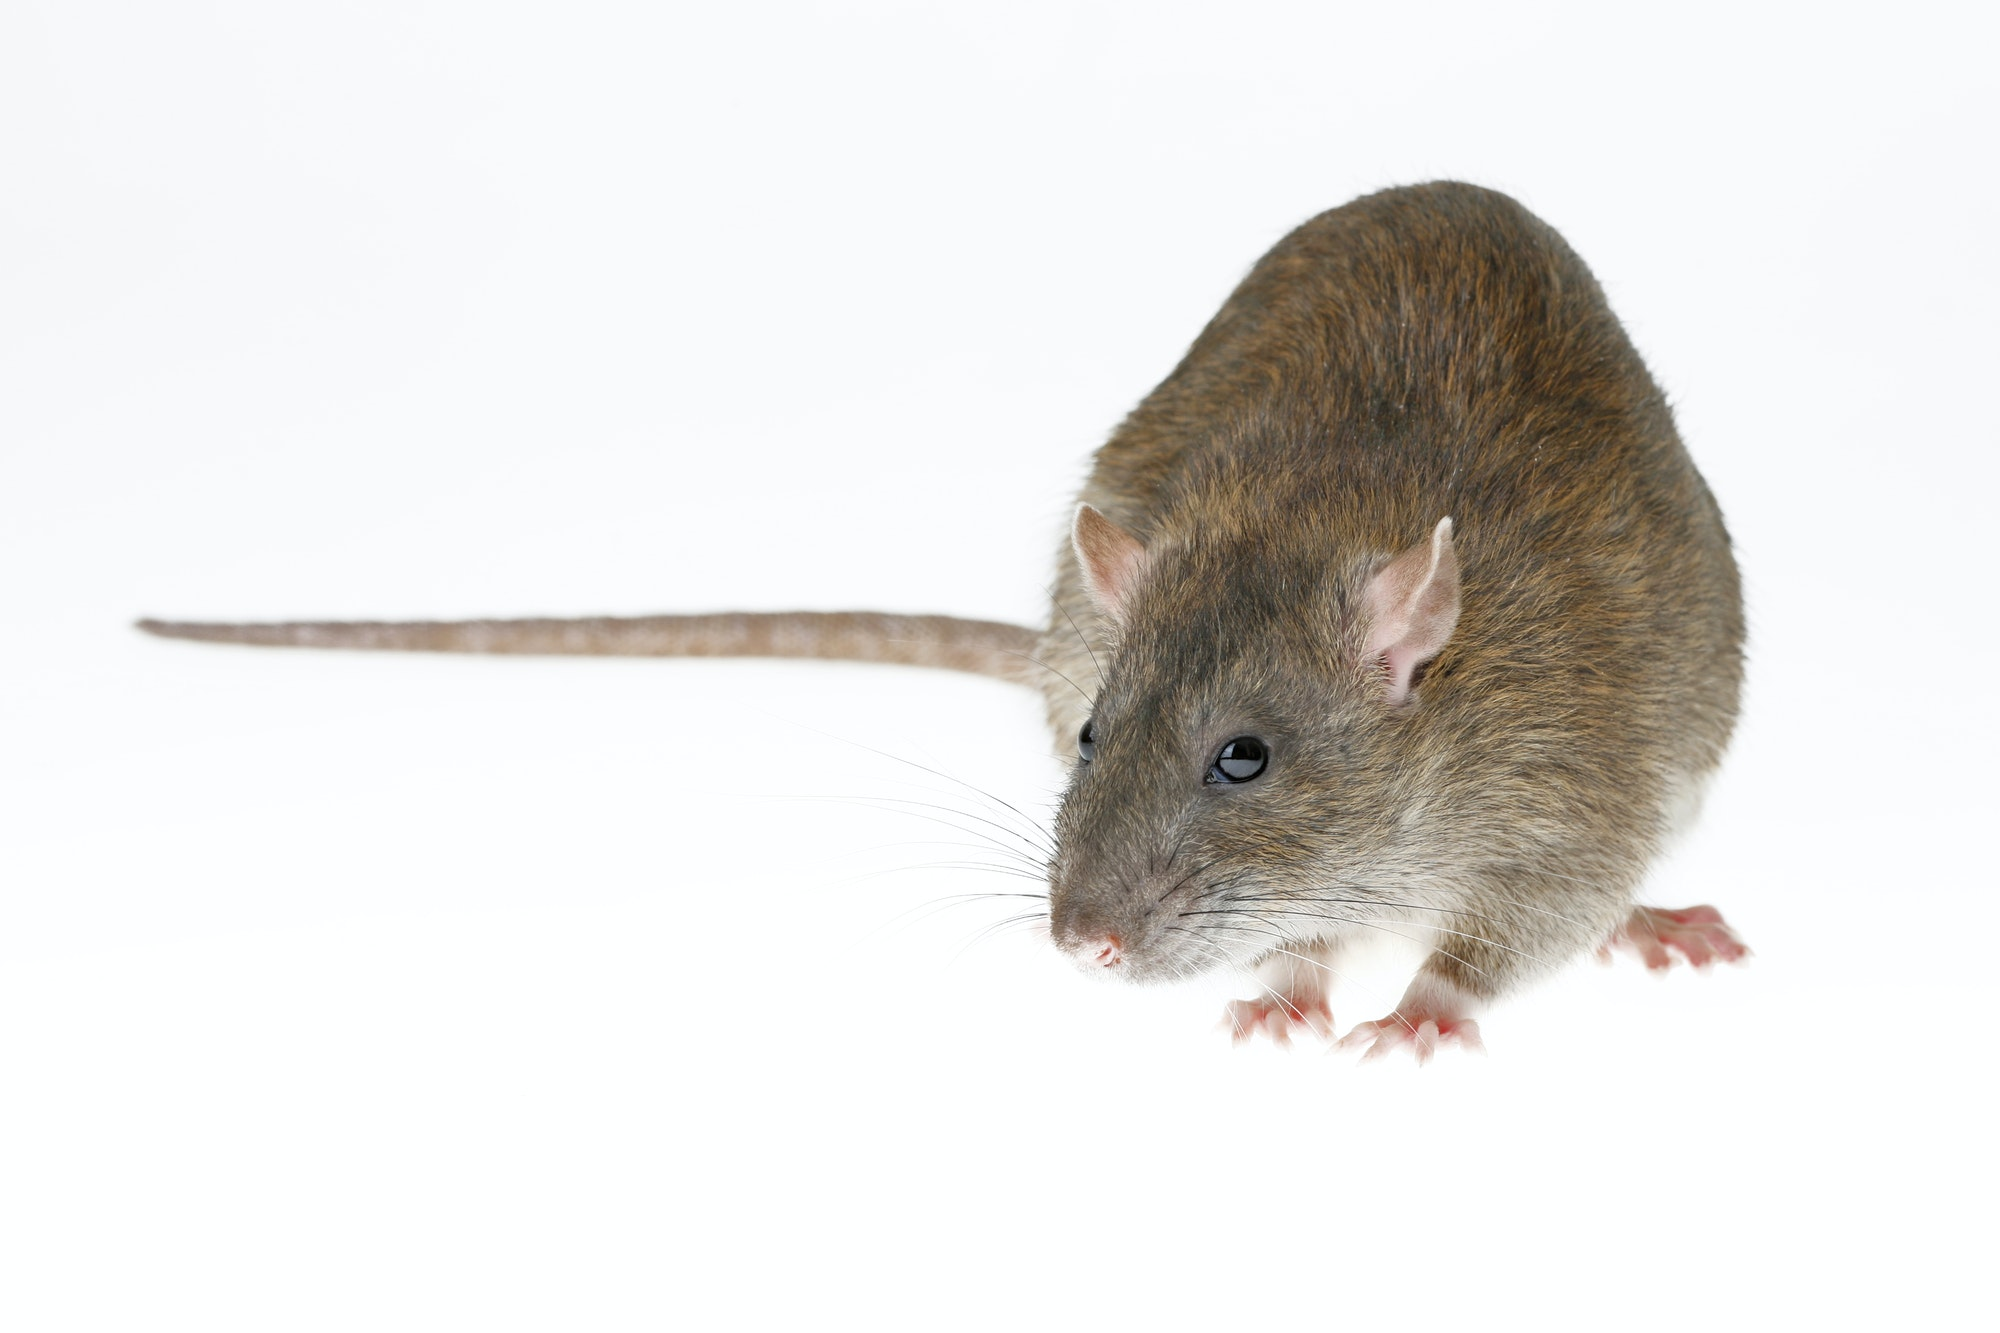 Front view of a Norway rat, which has a long brown body with pink ears and feet, and a brown tail that is shorter than its body.